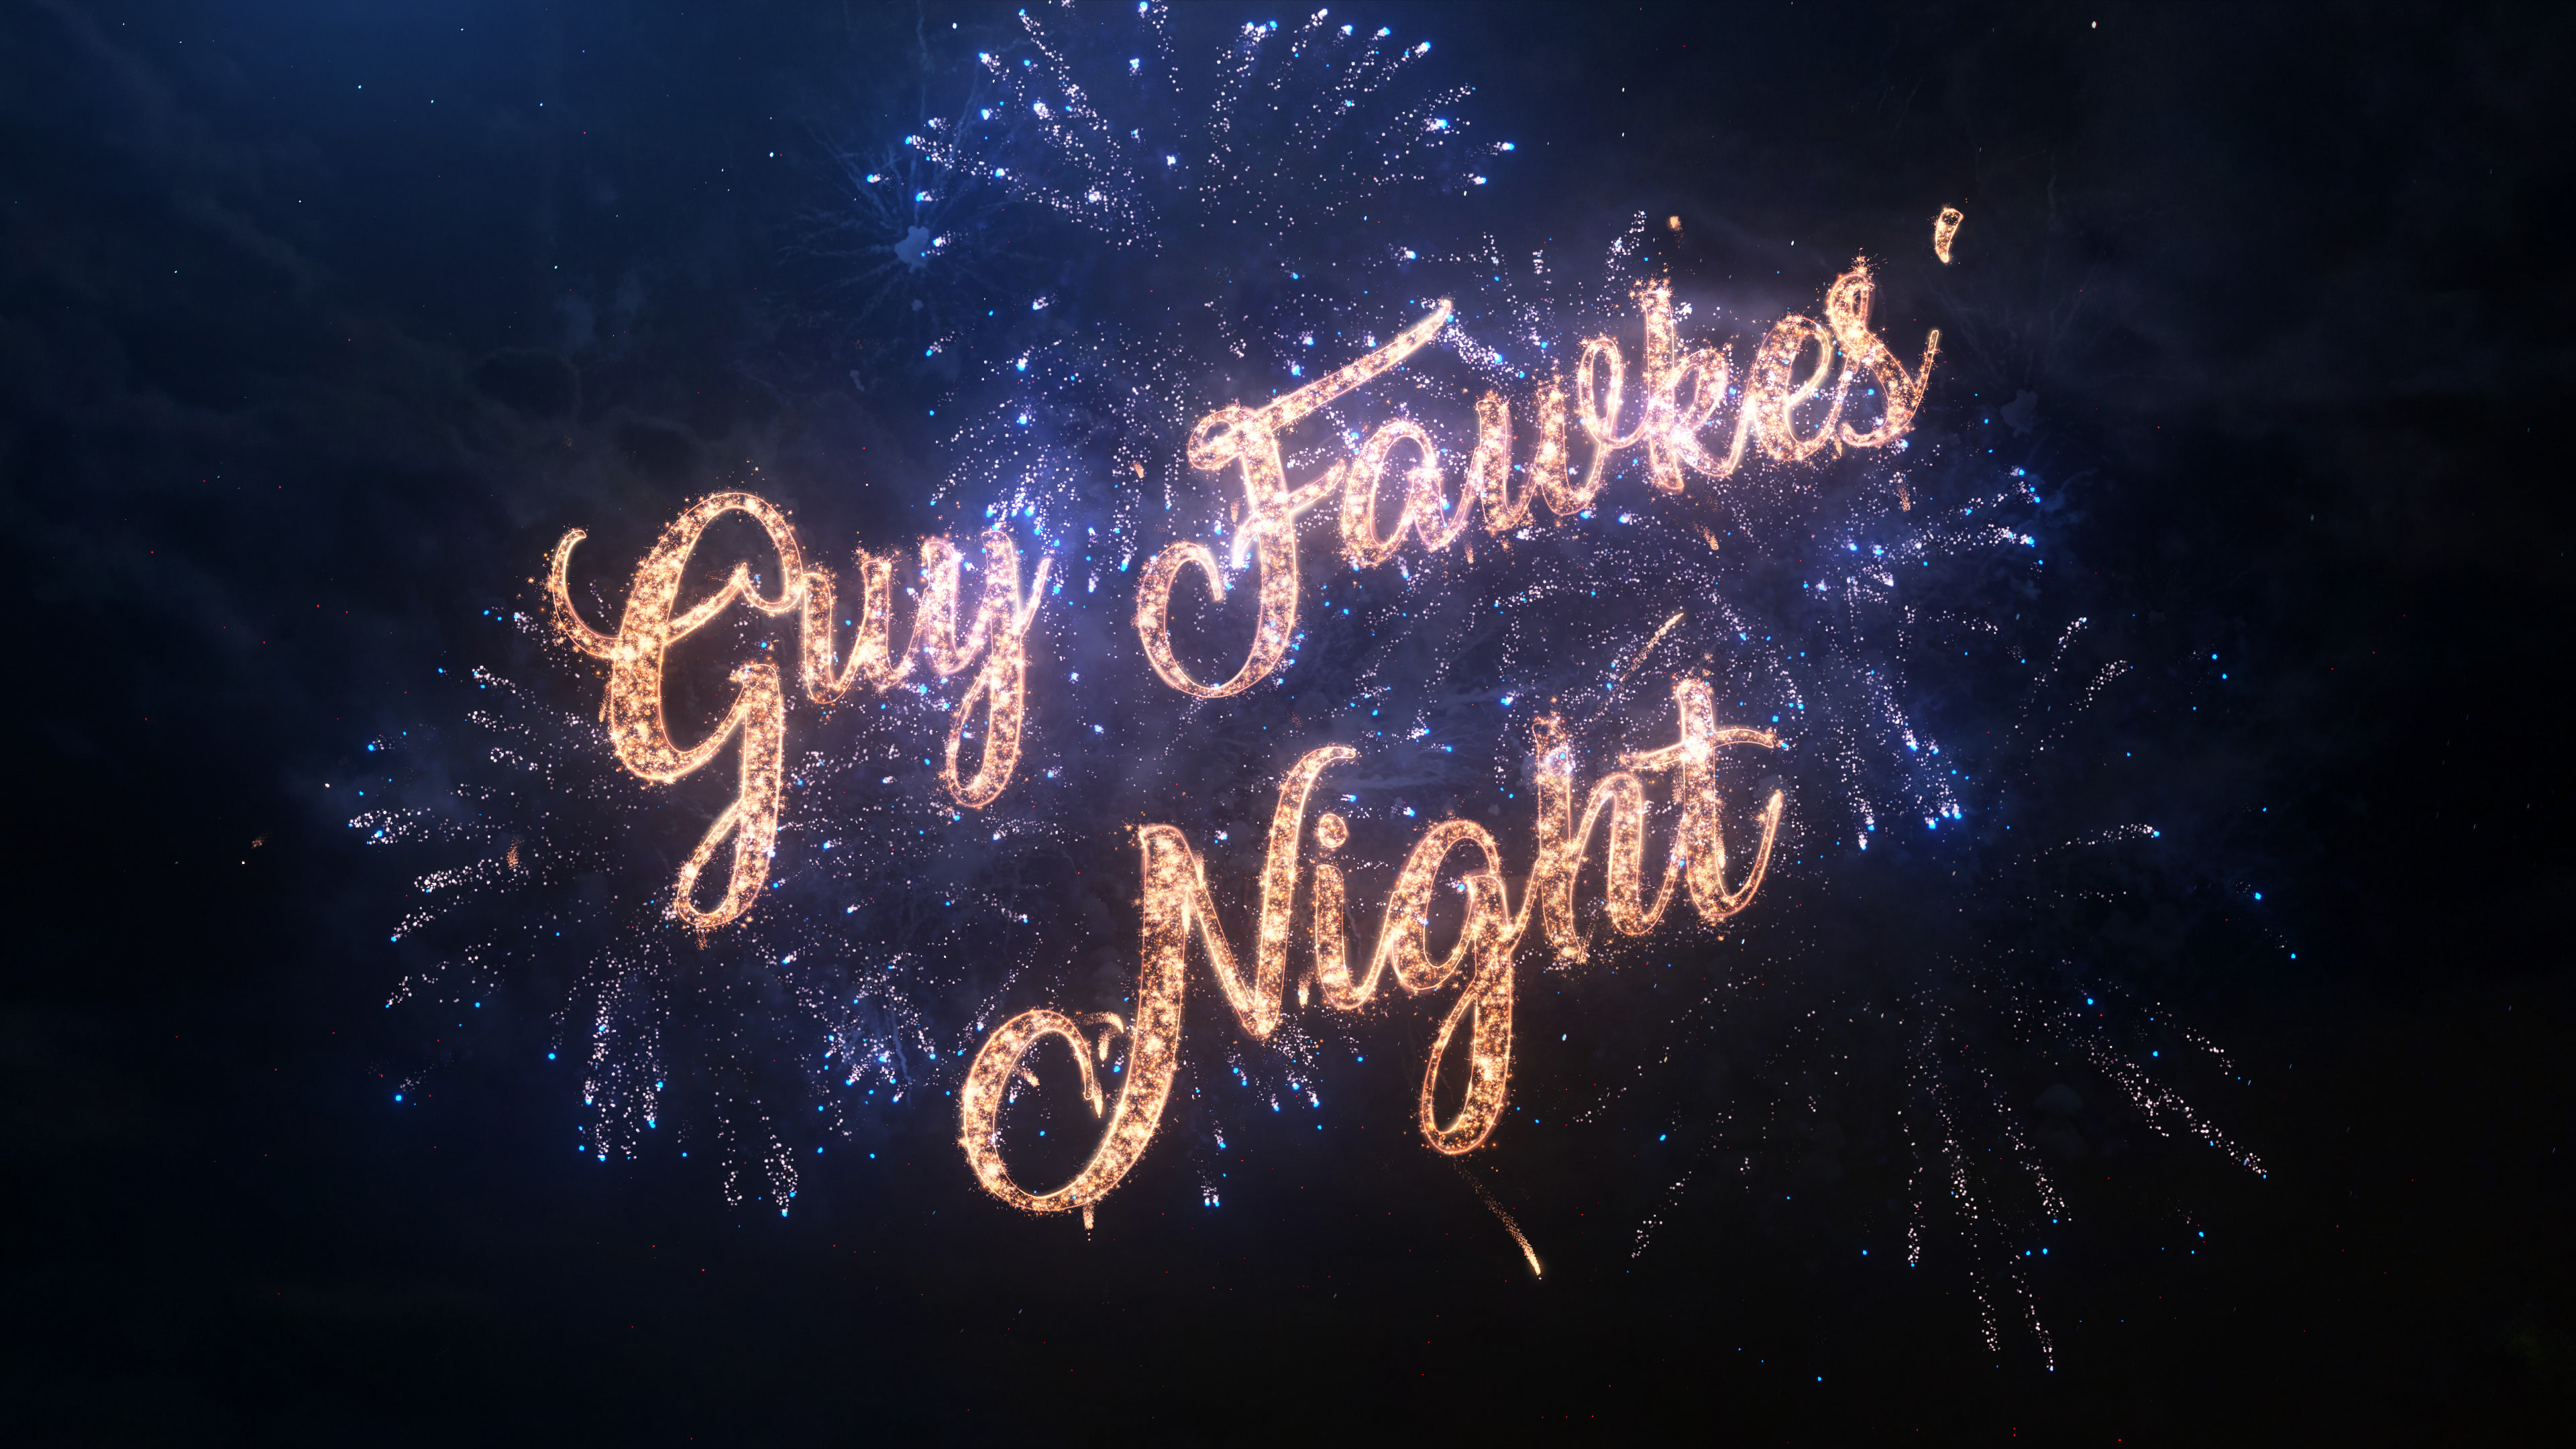 Guy Fawkes wording lit up in the night sky for the best bonfire nights in the UK